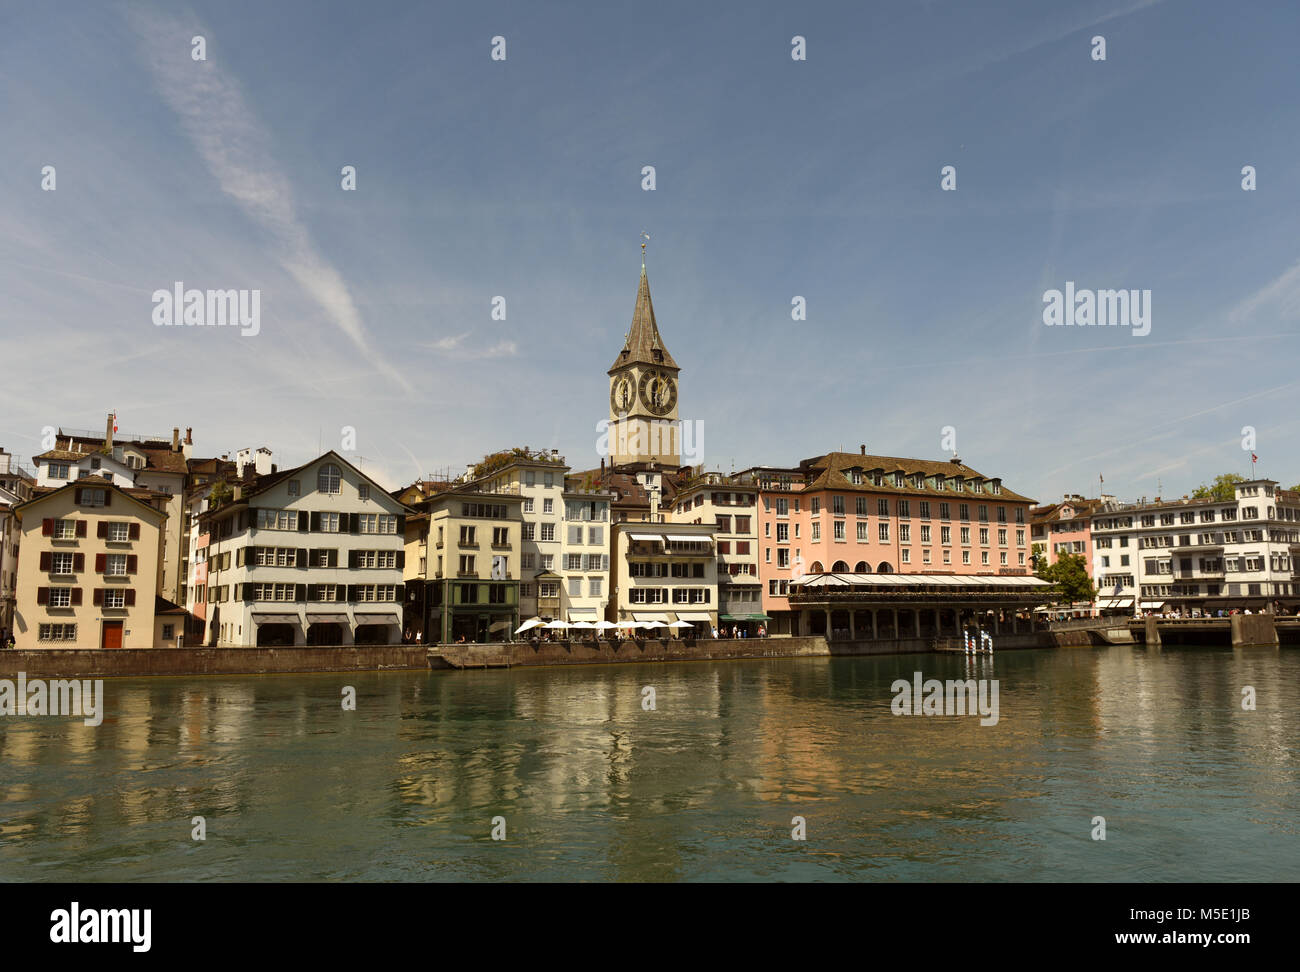 Zurich cityscape with Limmatquai and St. Peter Church, Switzerland - Stock Image